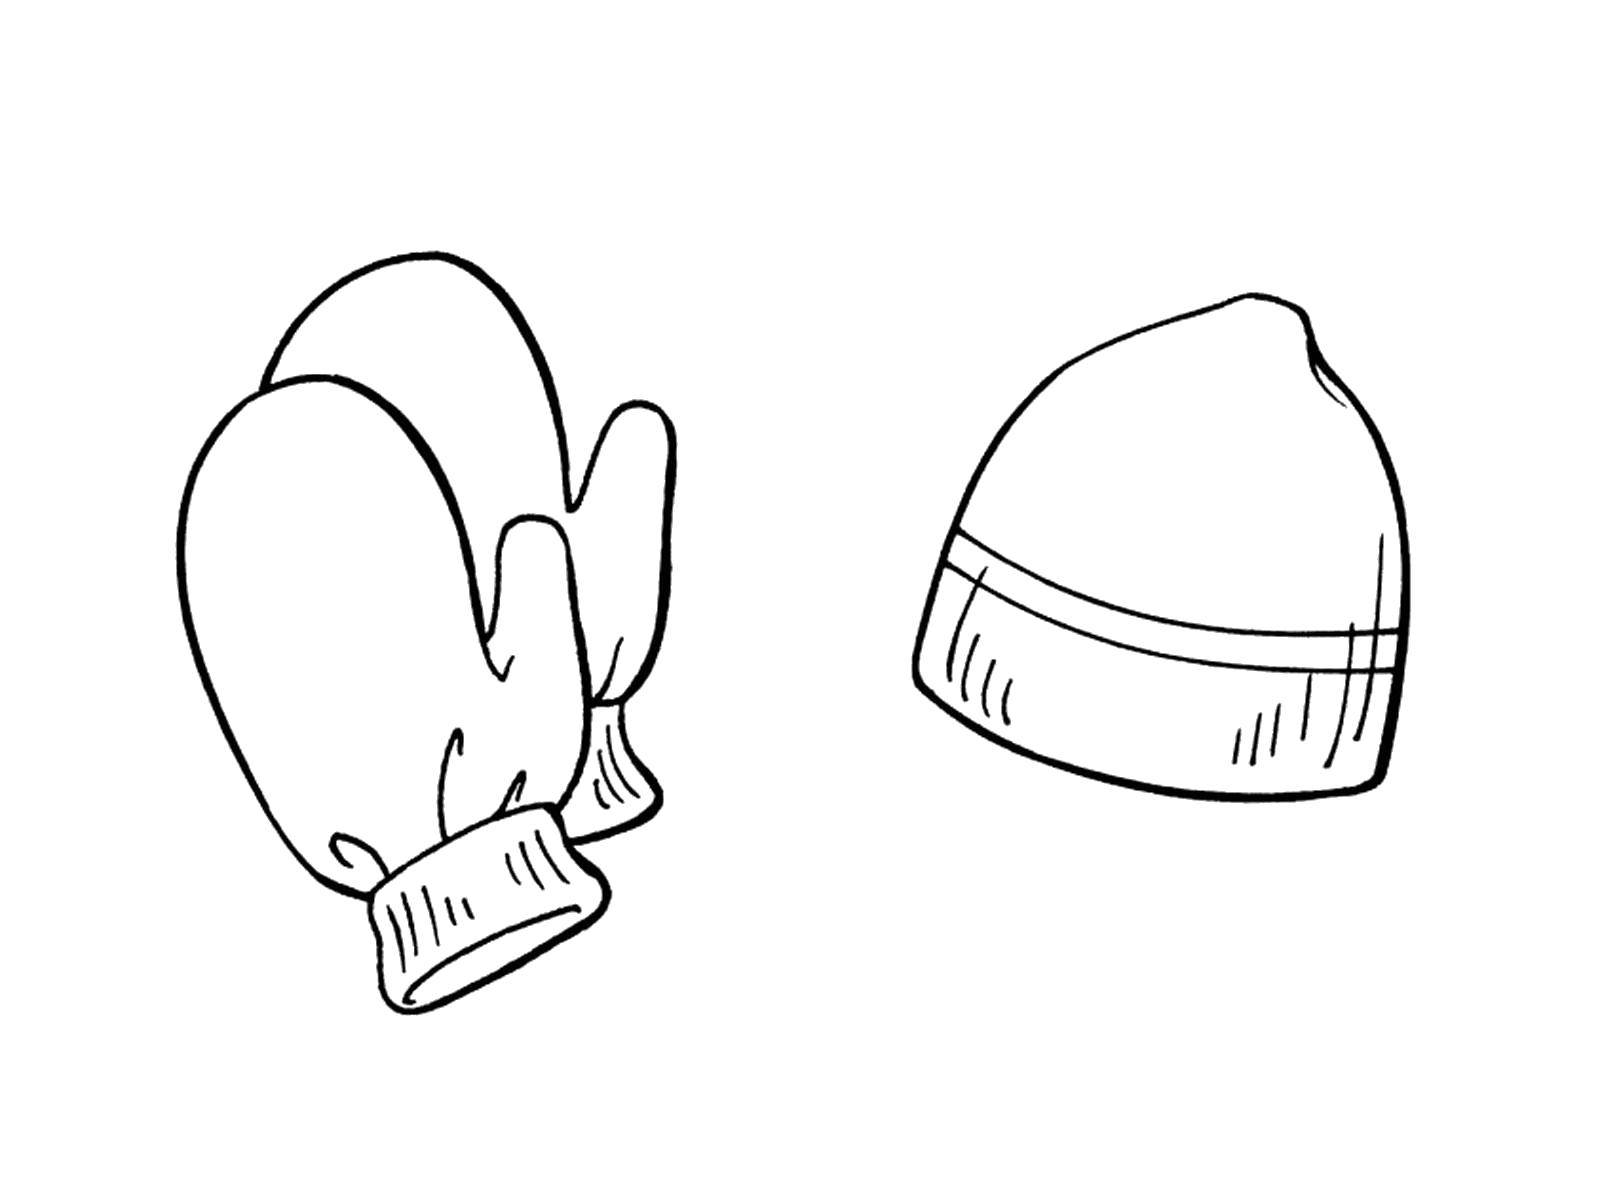 Mitten Coloring Pages - GetColoringPages.com | 1200x1600